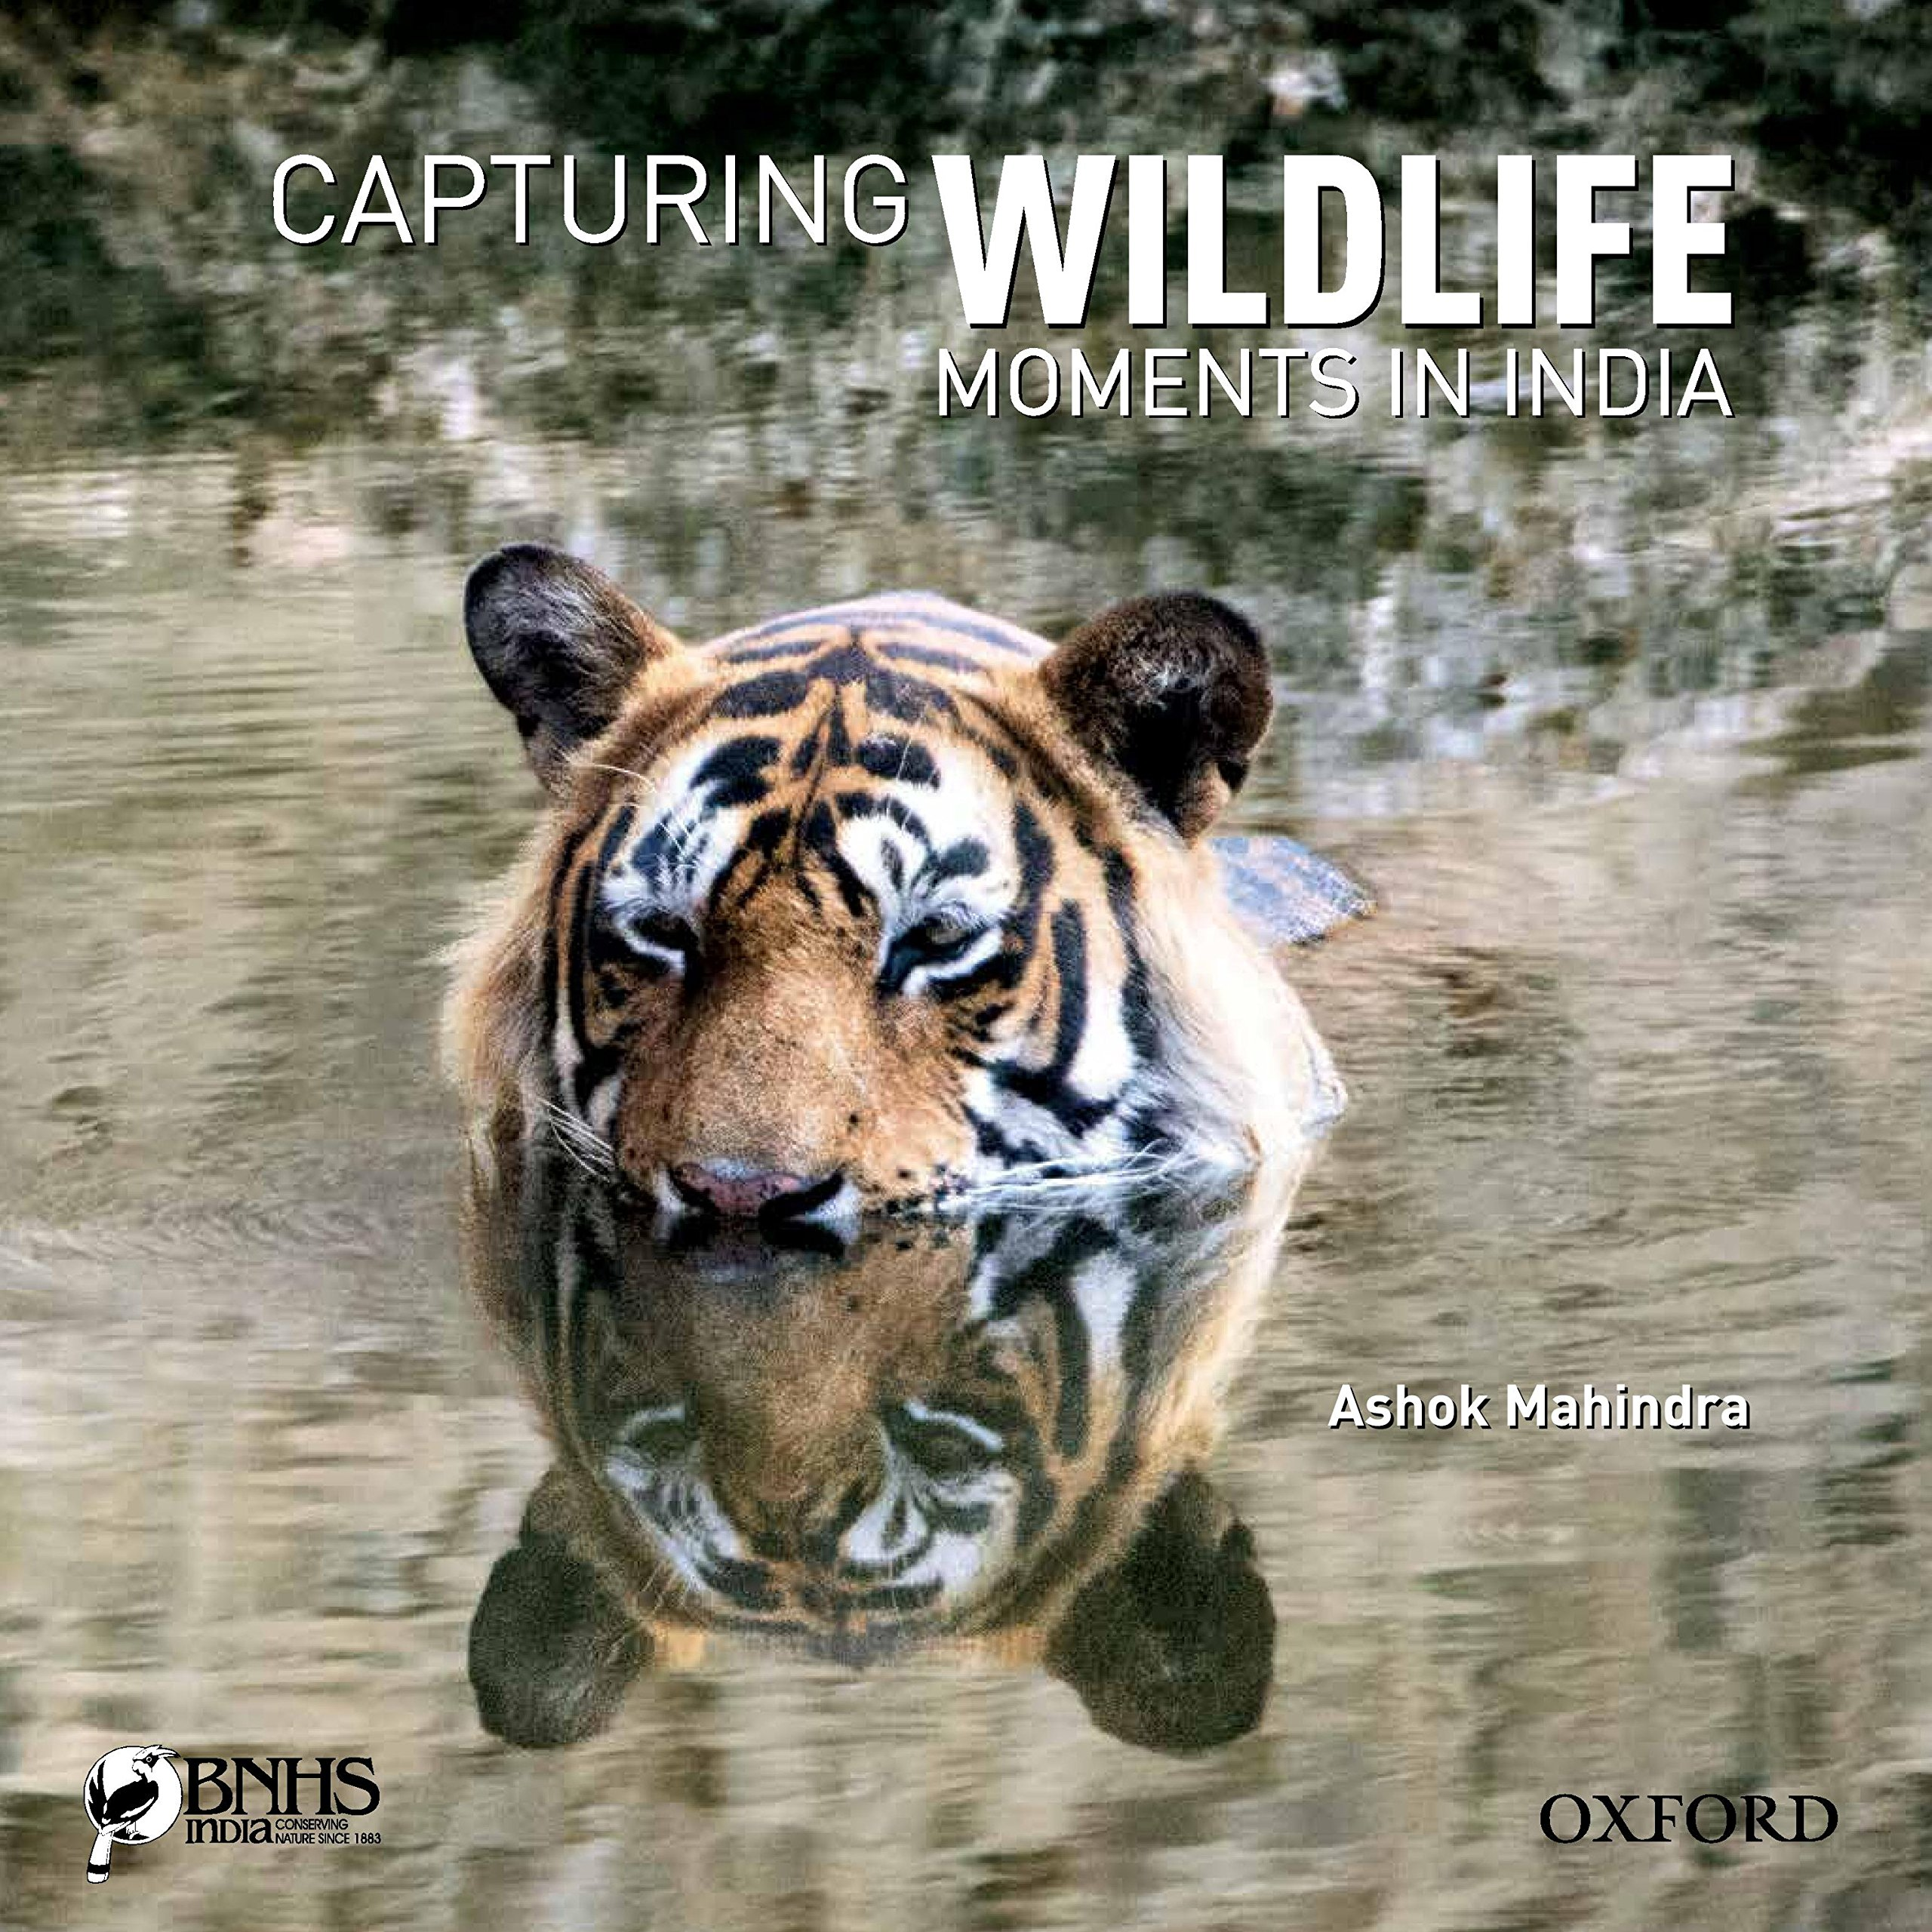 Buy Capturing Wildlife Moments in India Book line at Low Prices